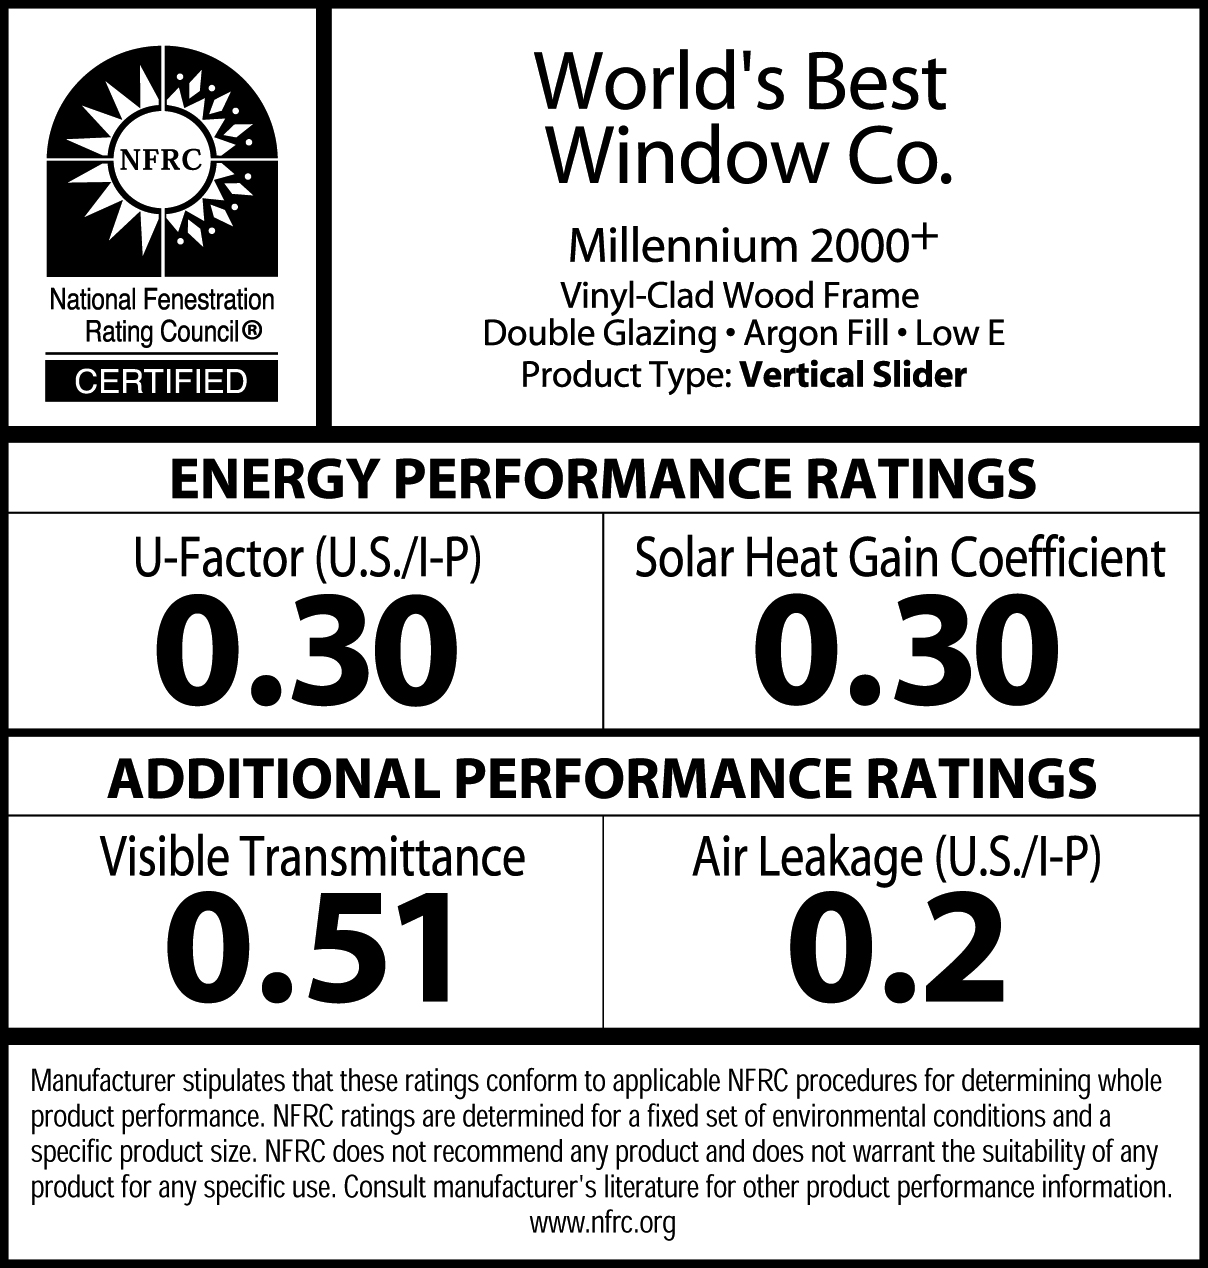 National Fenestration Ratings Council